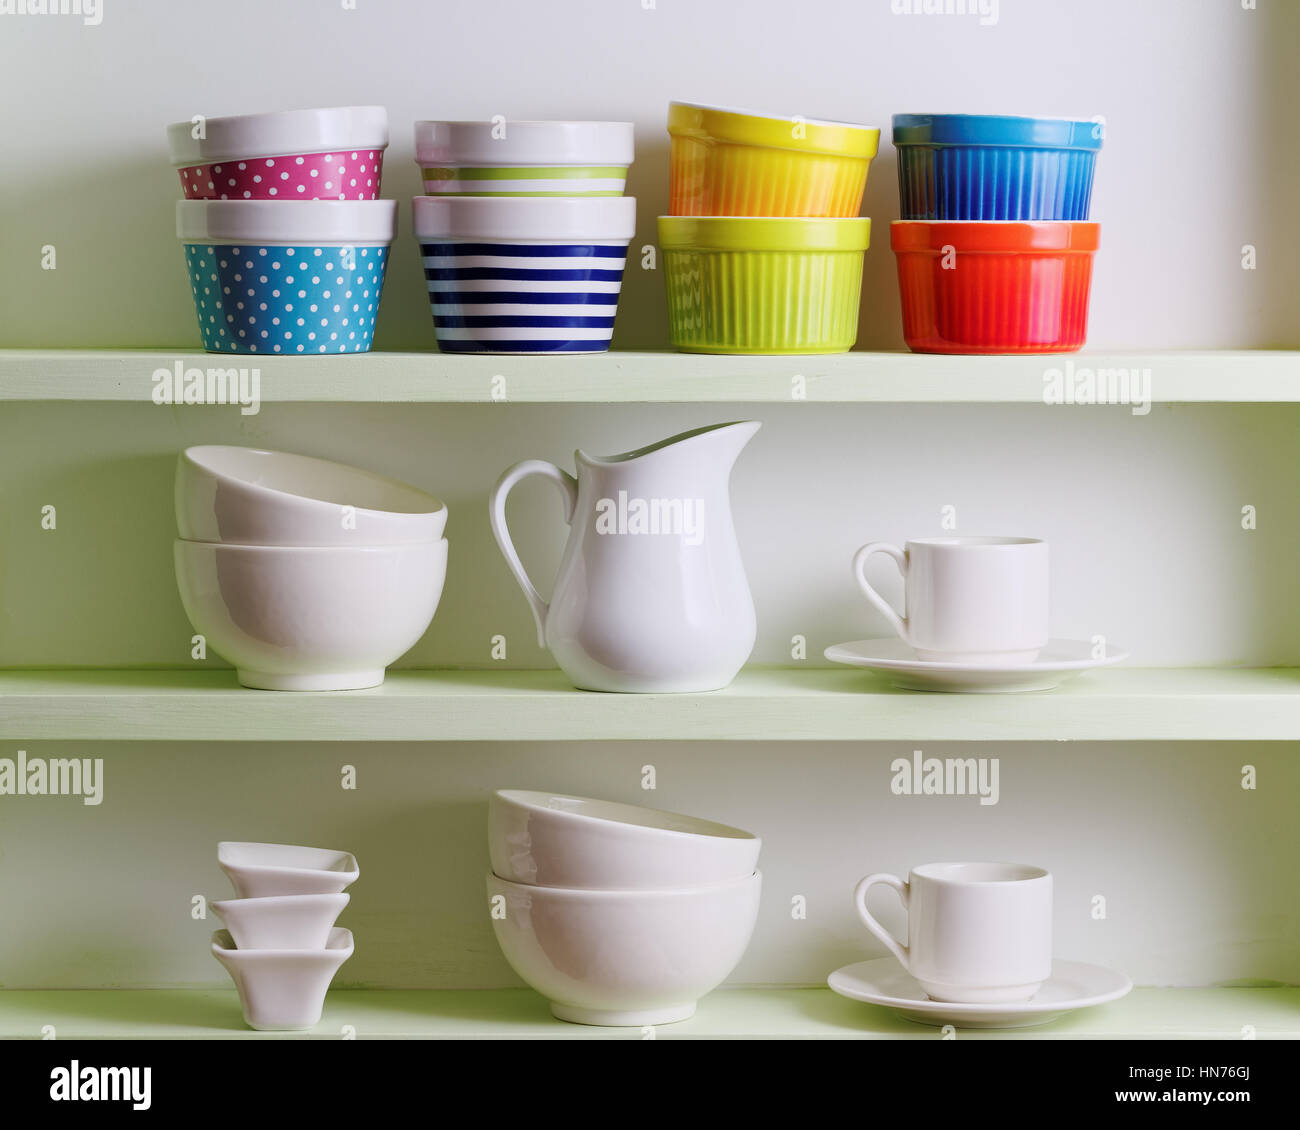 Variety of ceramics on shelf. Colorful bowls, cups and white dishware. - Stock Image